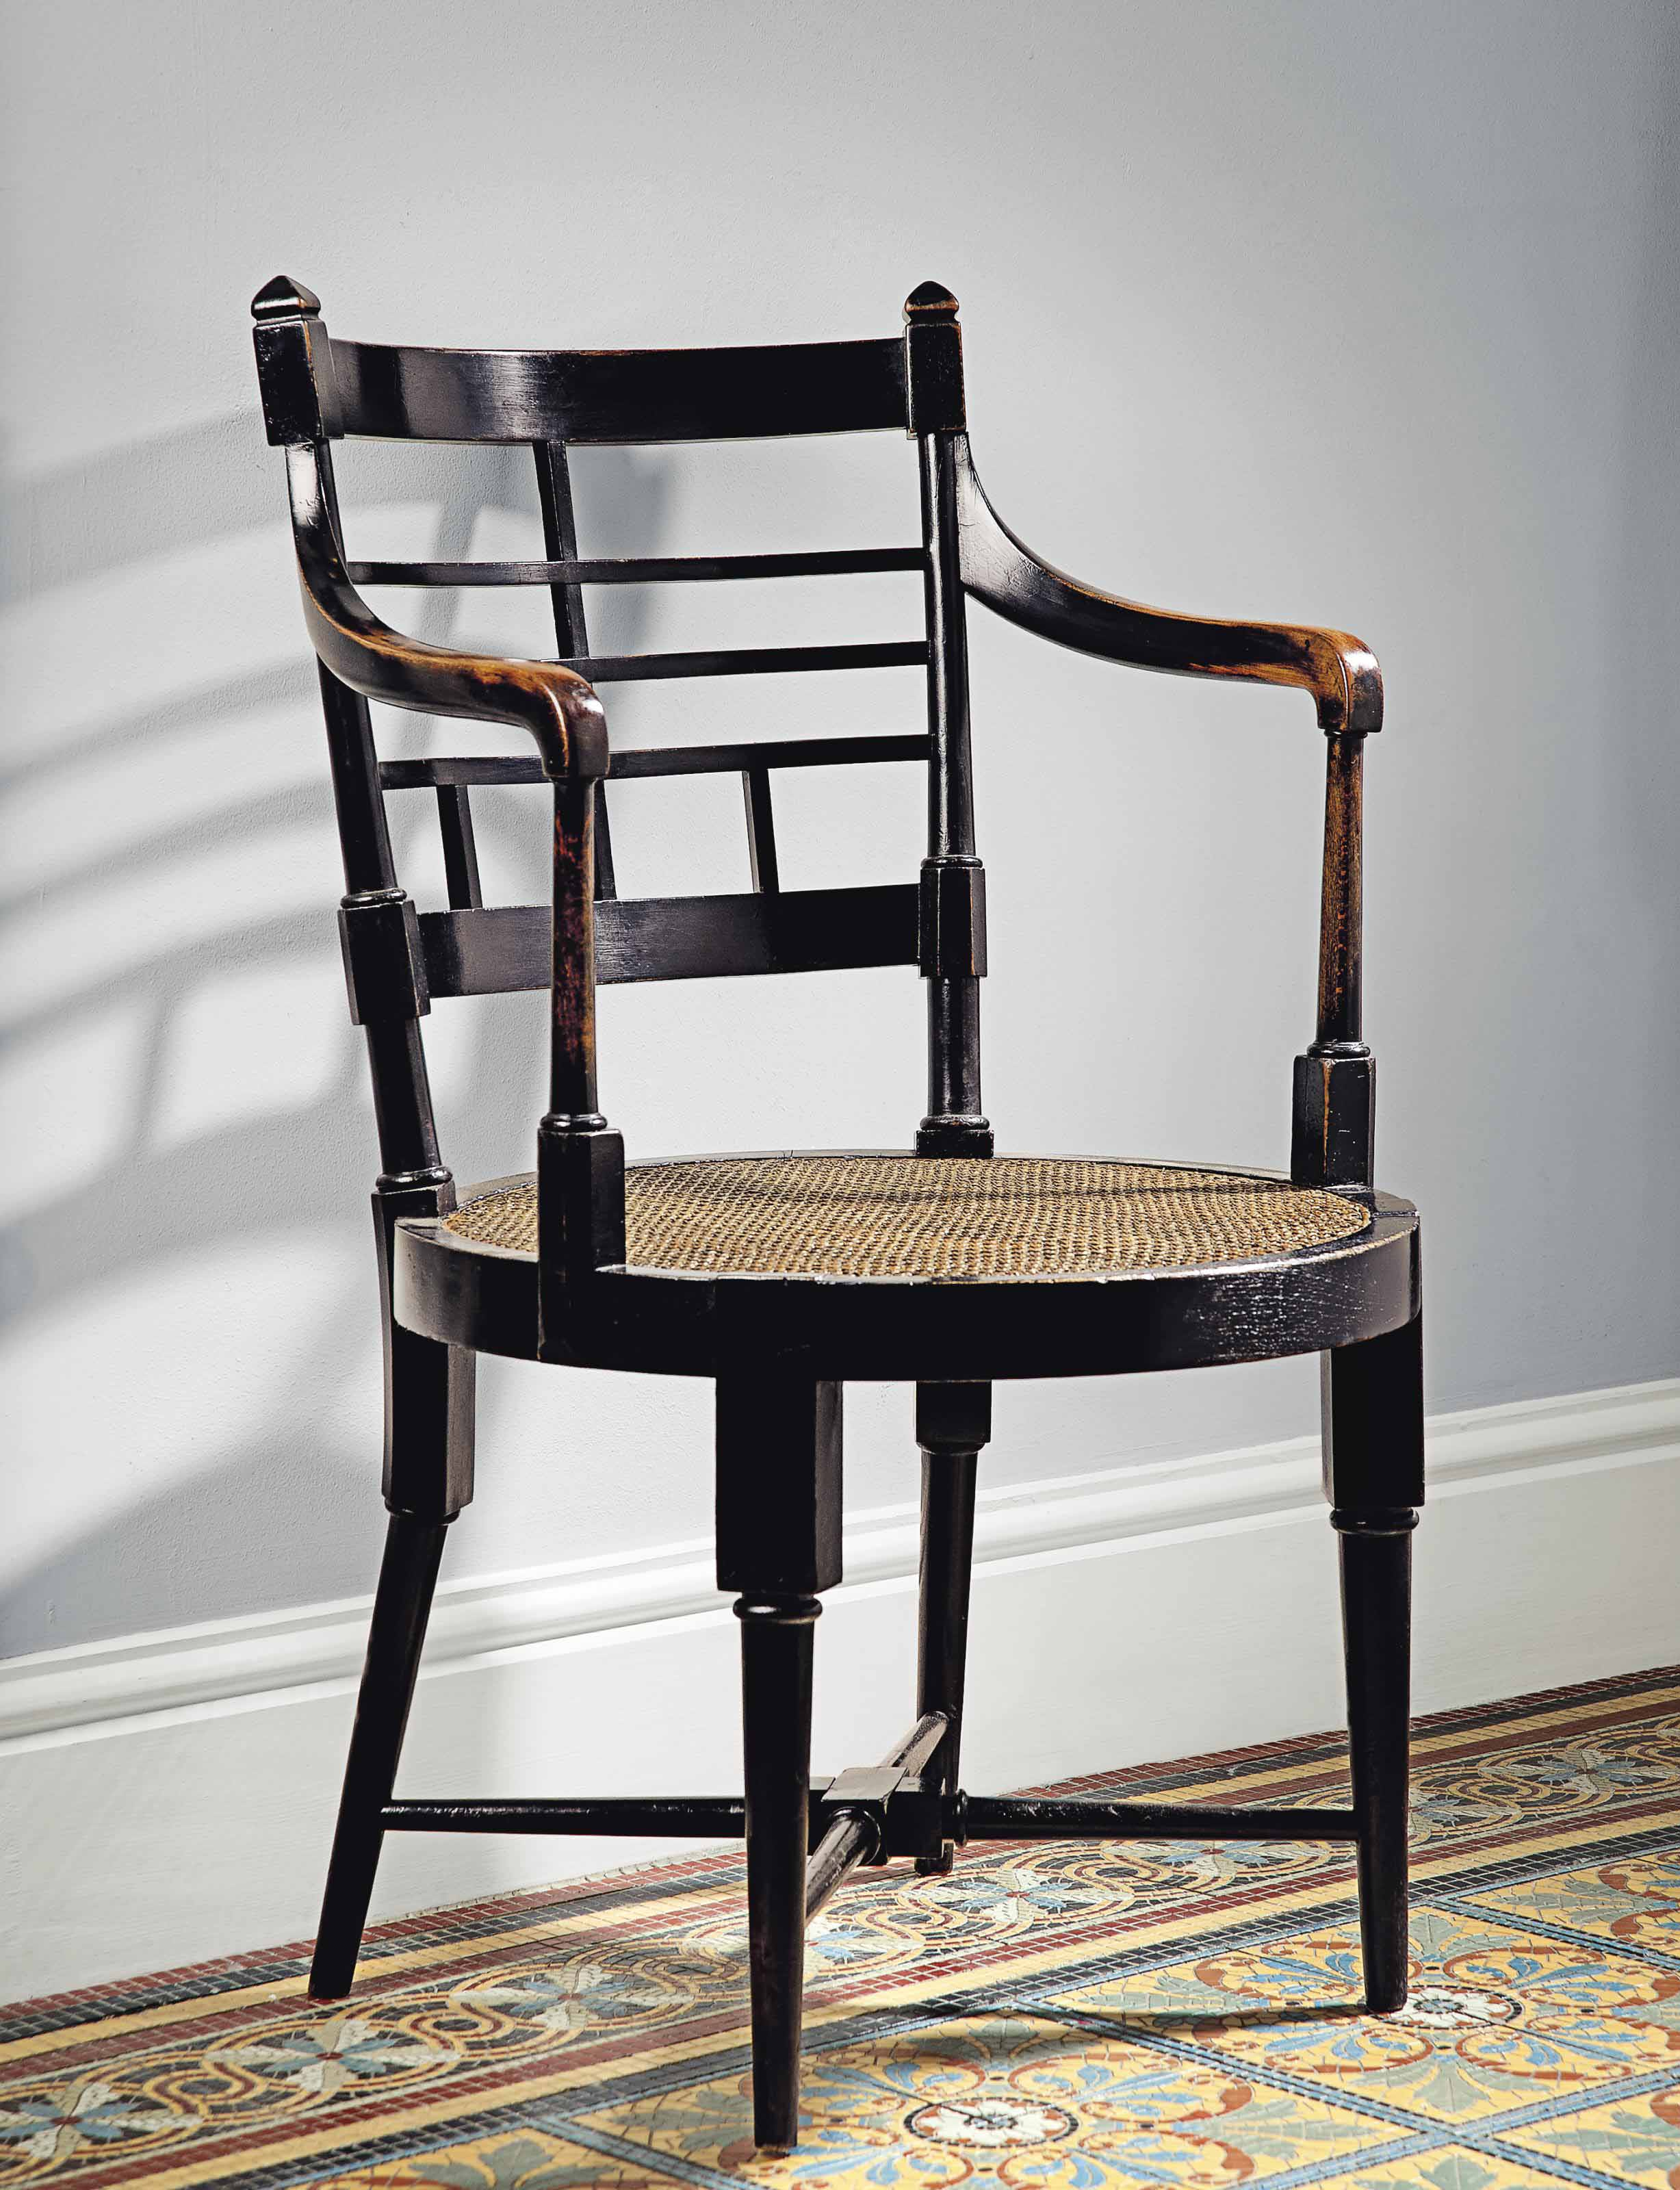 A PAIR OF EBONISED BEECH ANGLO-JAPANESE OPEN ARMCHAIRS, AFTER E.W. GODWIN (1833-1886)